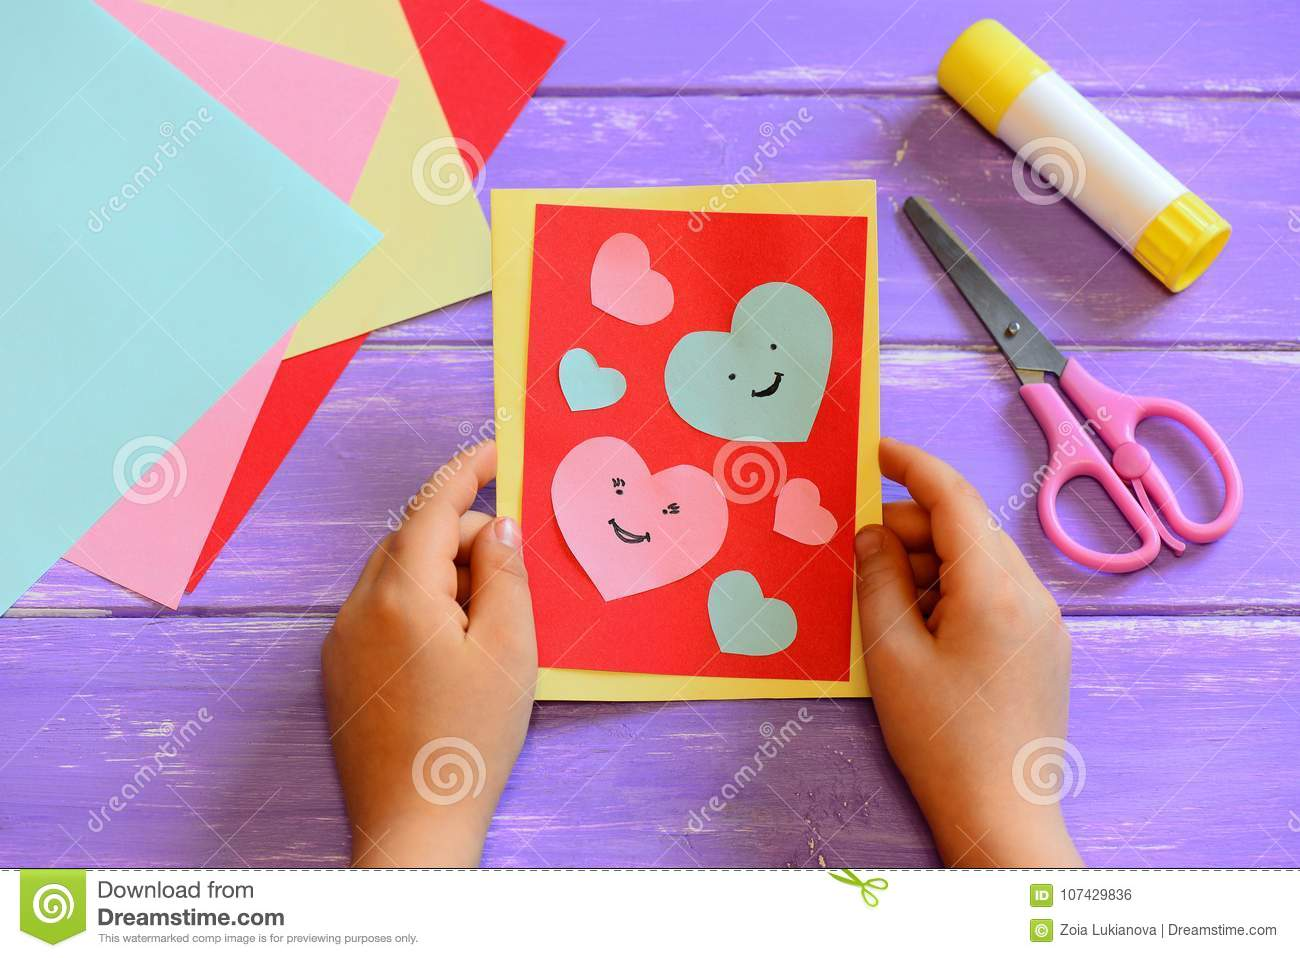 Fun Art And Craft With Paper For Children Crafts Home Easy Kids